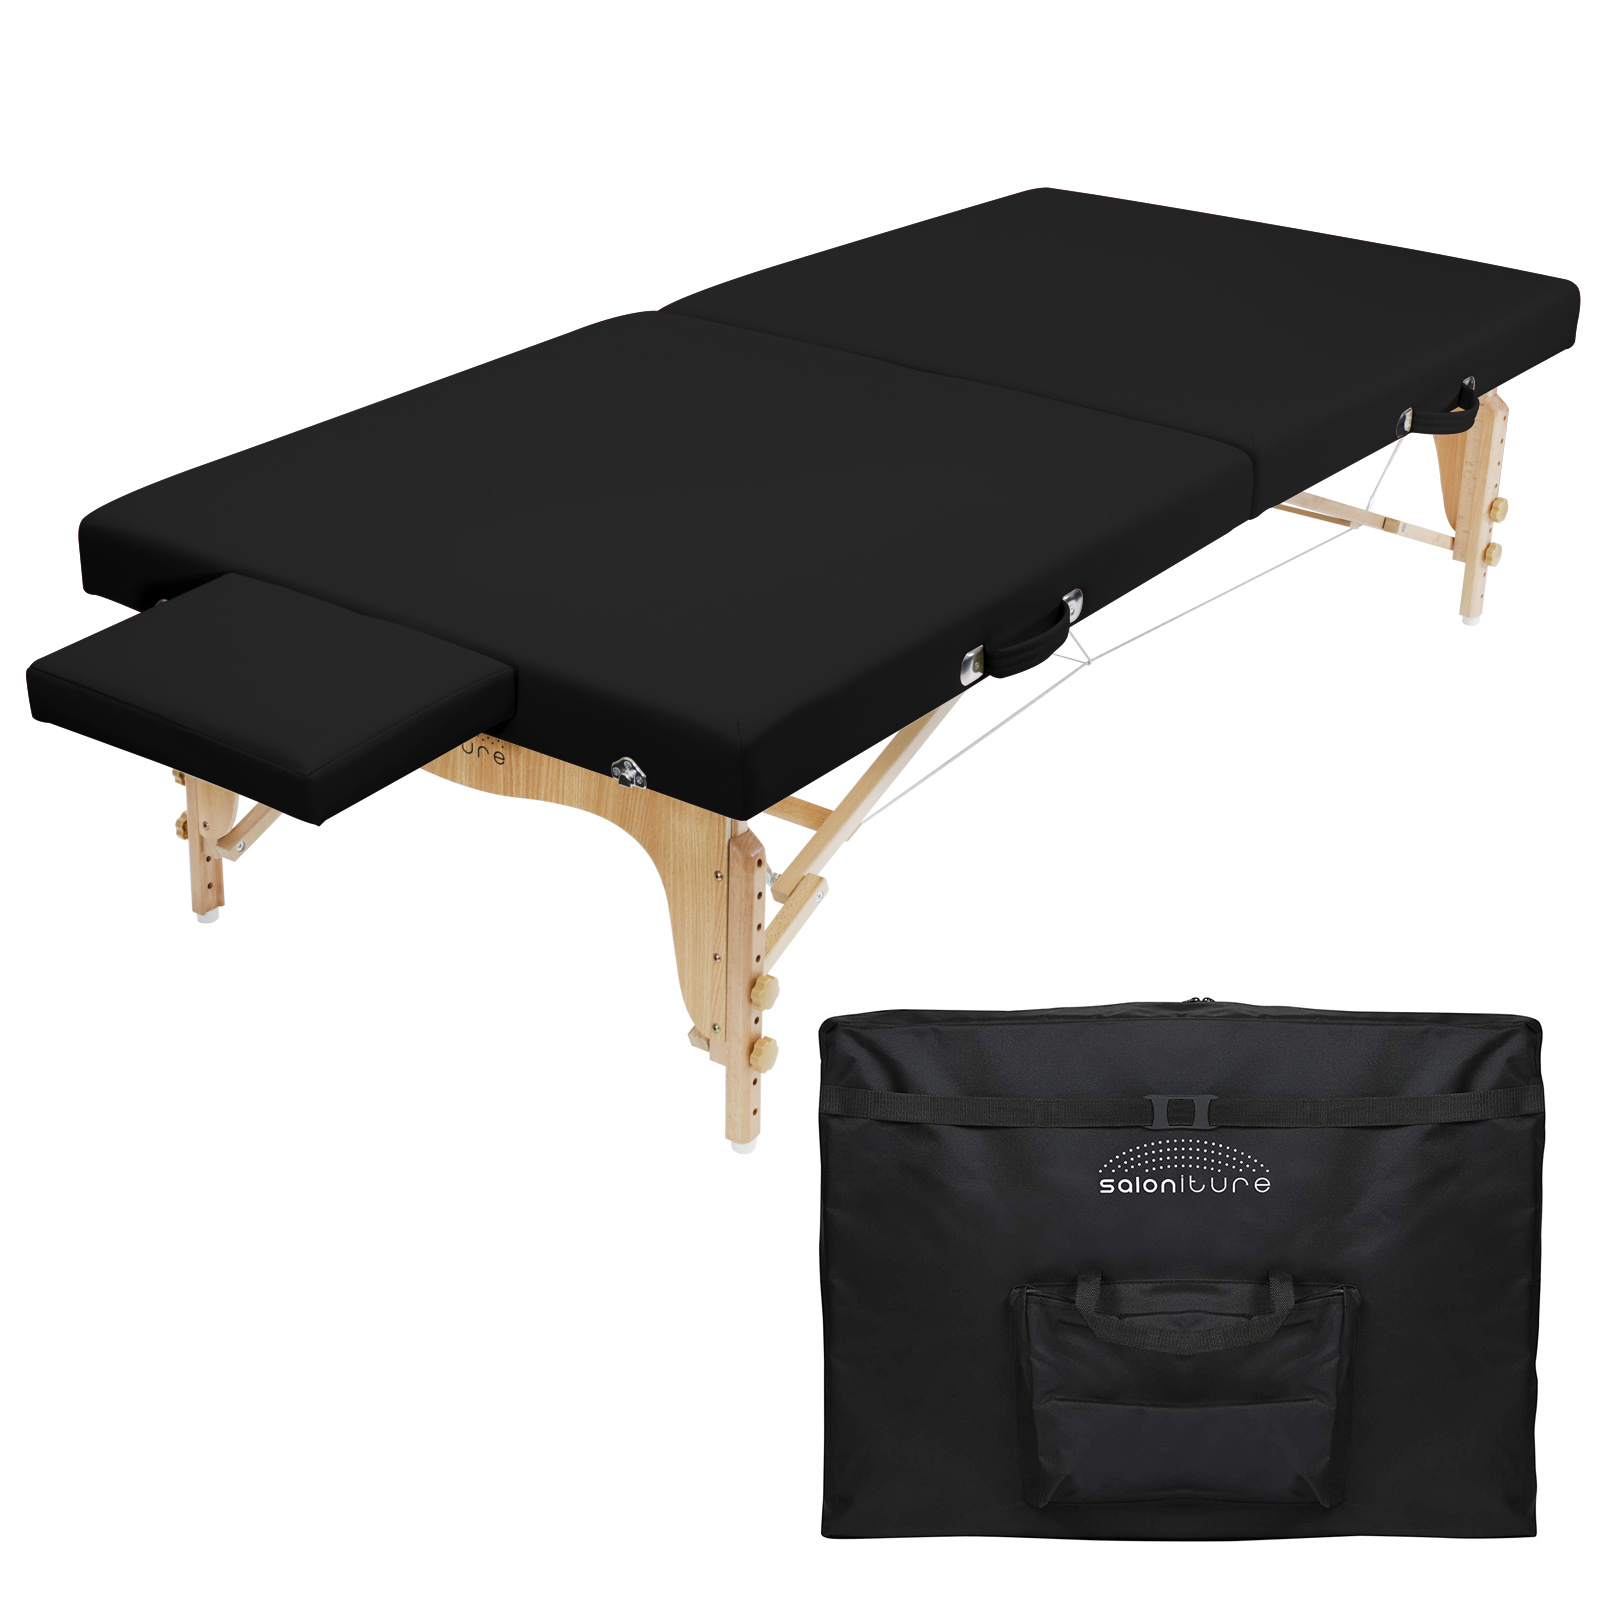 Saloniture Portable Physical Therapy Massage Table - Low to Ground Stretching Treatment Mat Platform - Multiple Colors Available